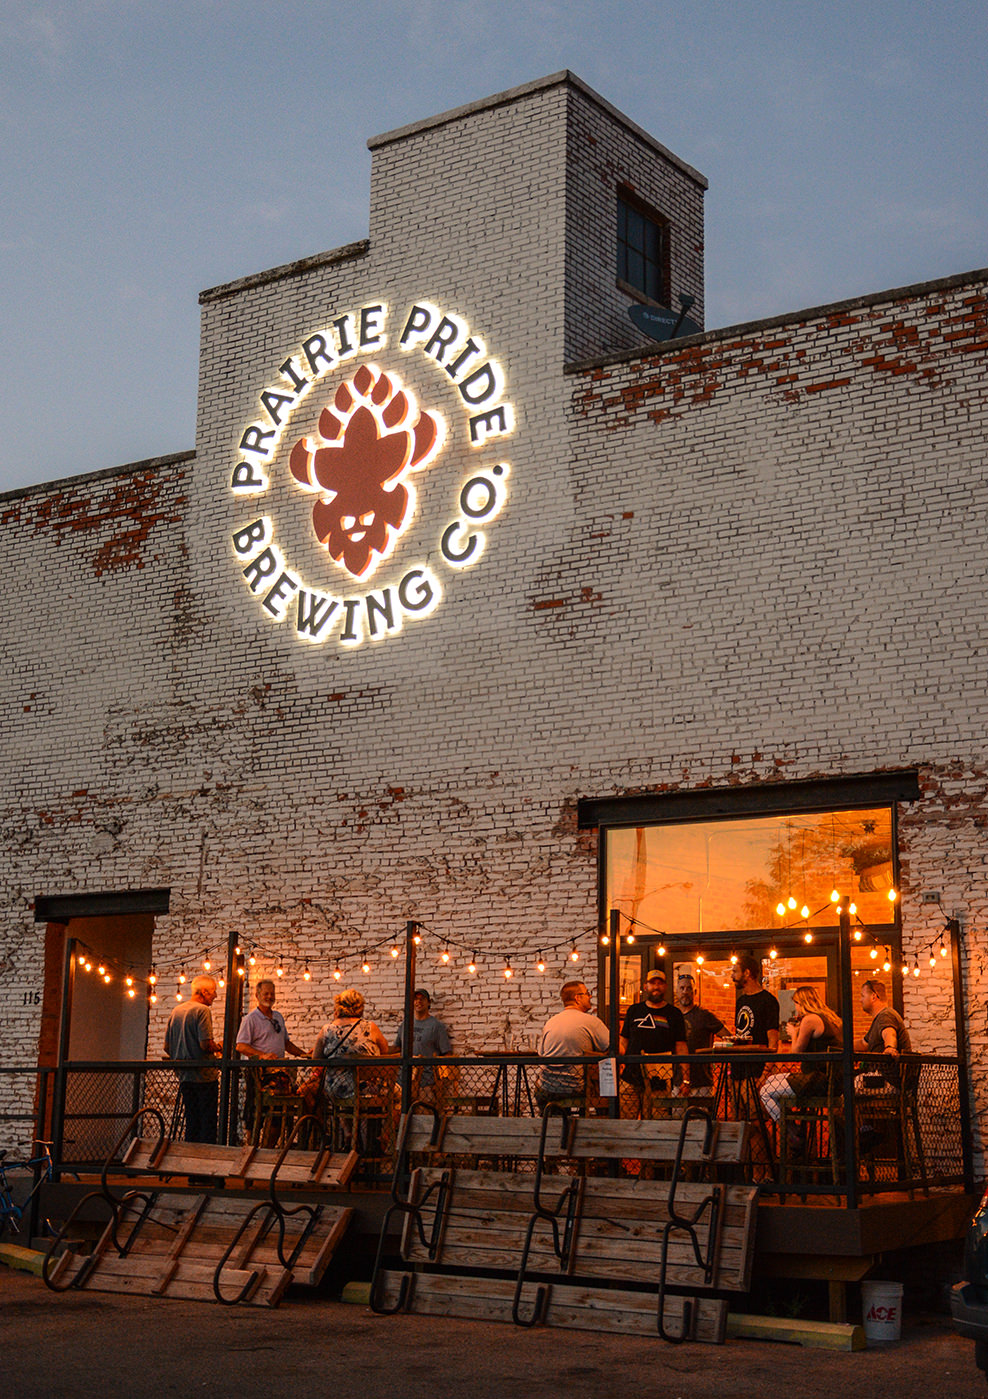 A Brewery Returns to Railside